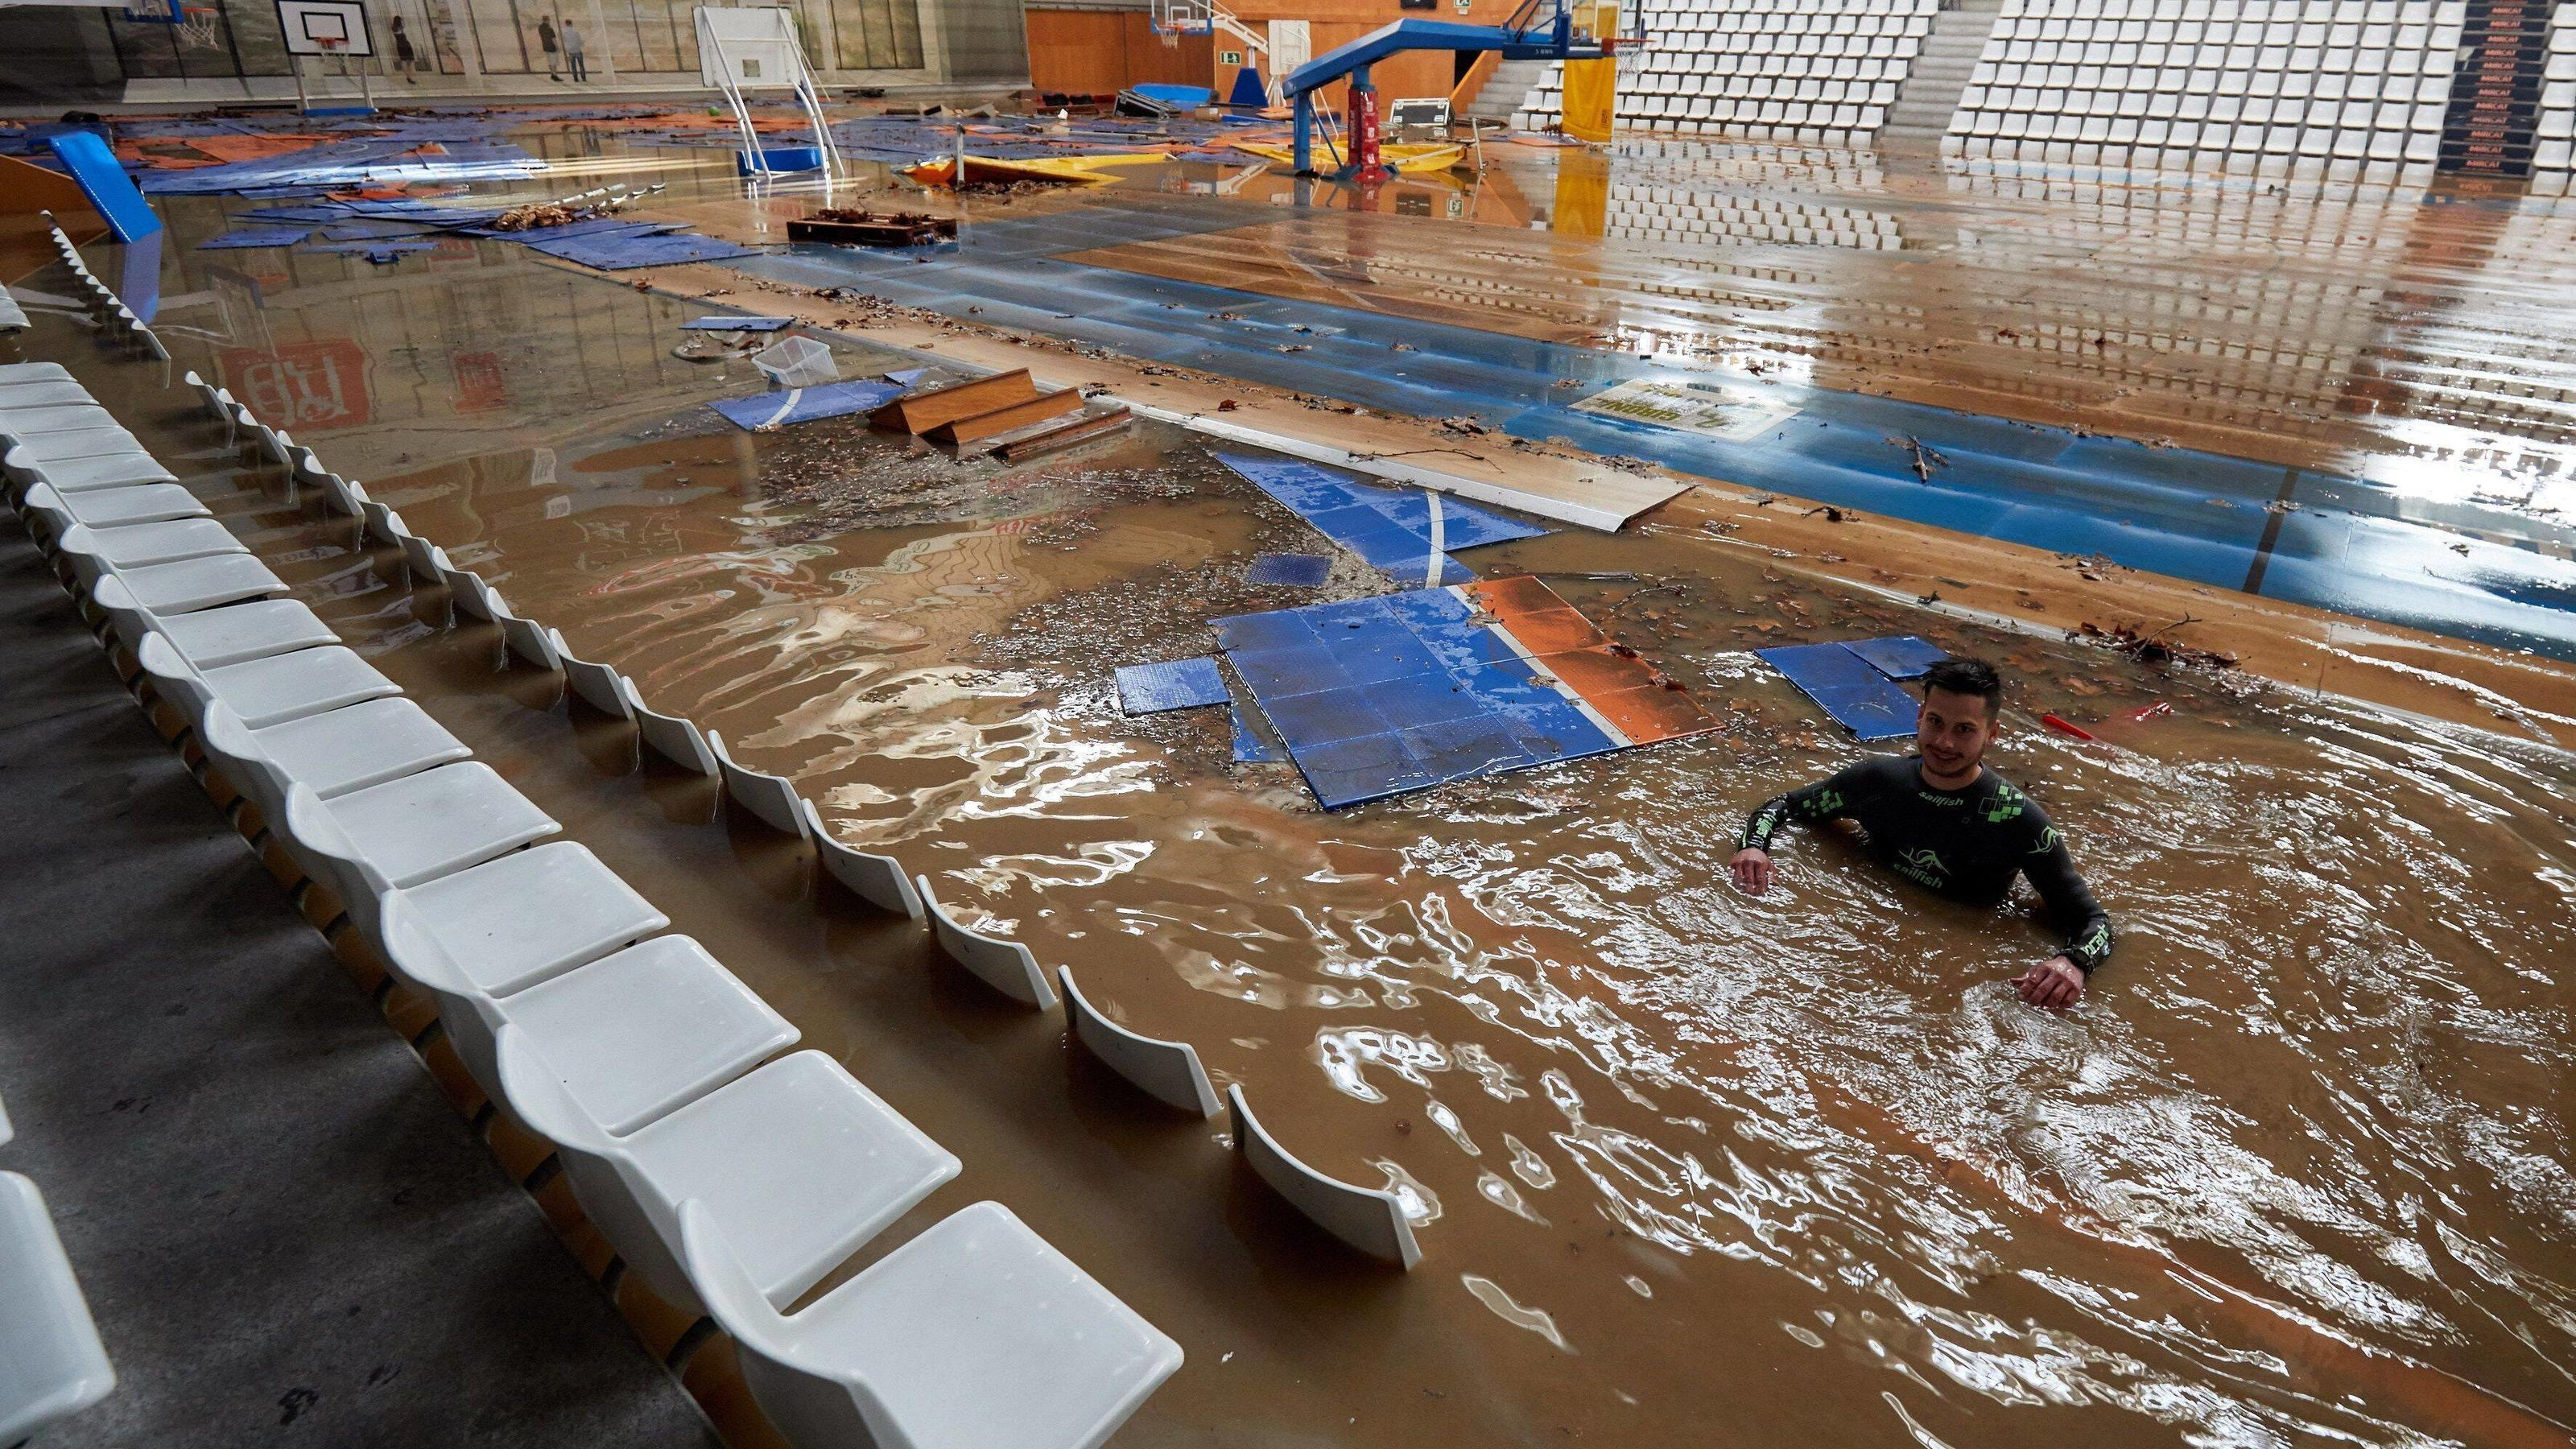 News Bilder des Tages A man works on the recovery works inside a sports complex affected by overflow of the Ter river in Girona, Spain, 23 January 2020, after three days of heavy rain due to storm Gloria. Storm Gloria aftermath ACHTUNG: NUR REDAKTION